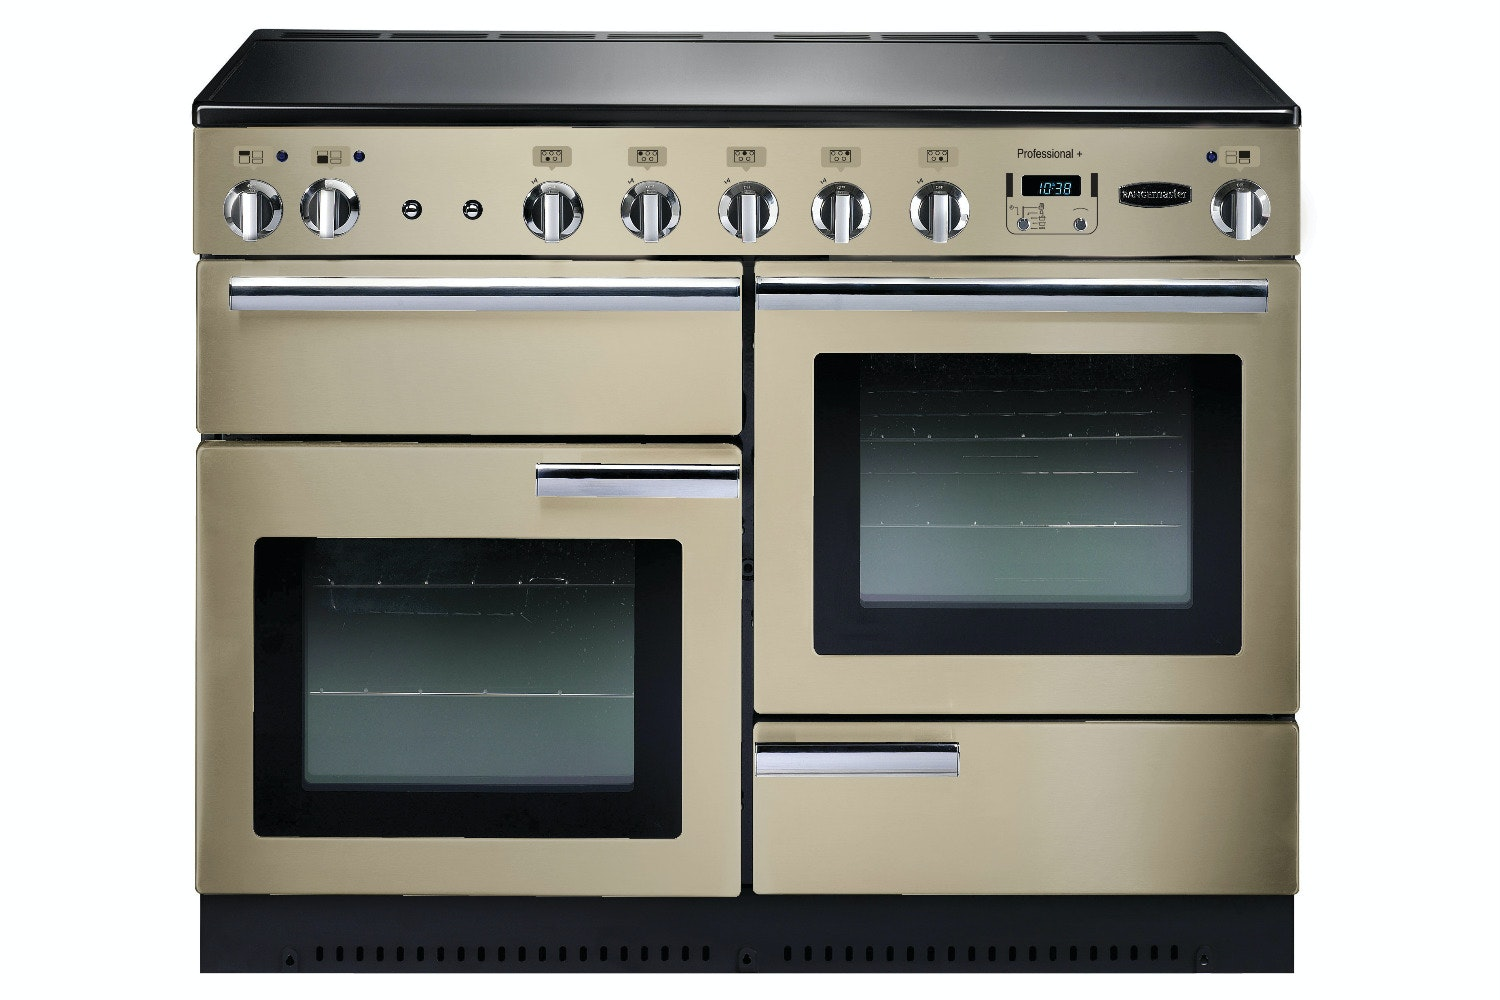 Rangemaster Pro Plus 110cm Electric Range Cooker | PROP110EICR/C | Cream